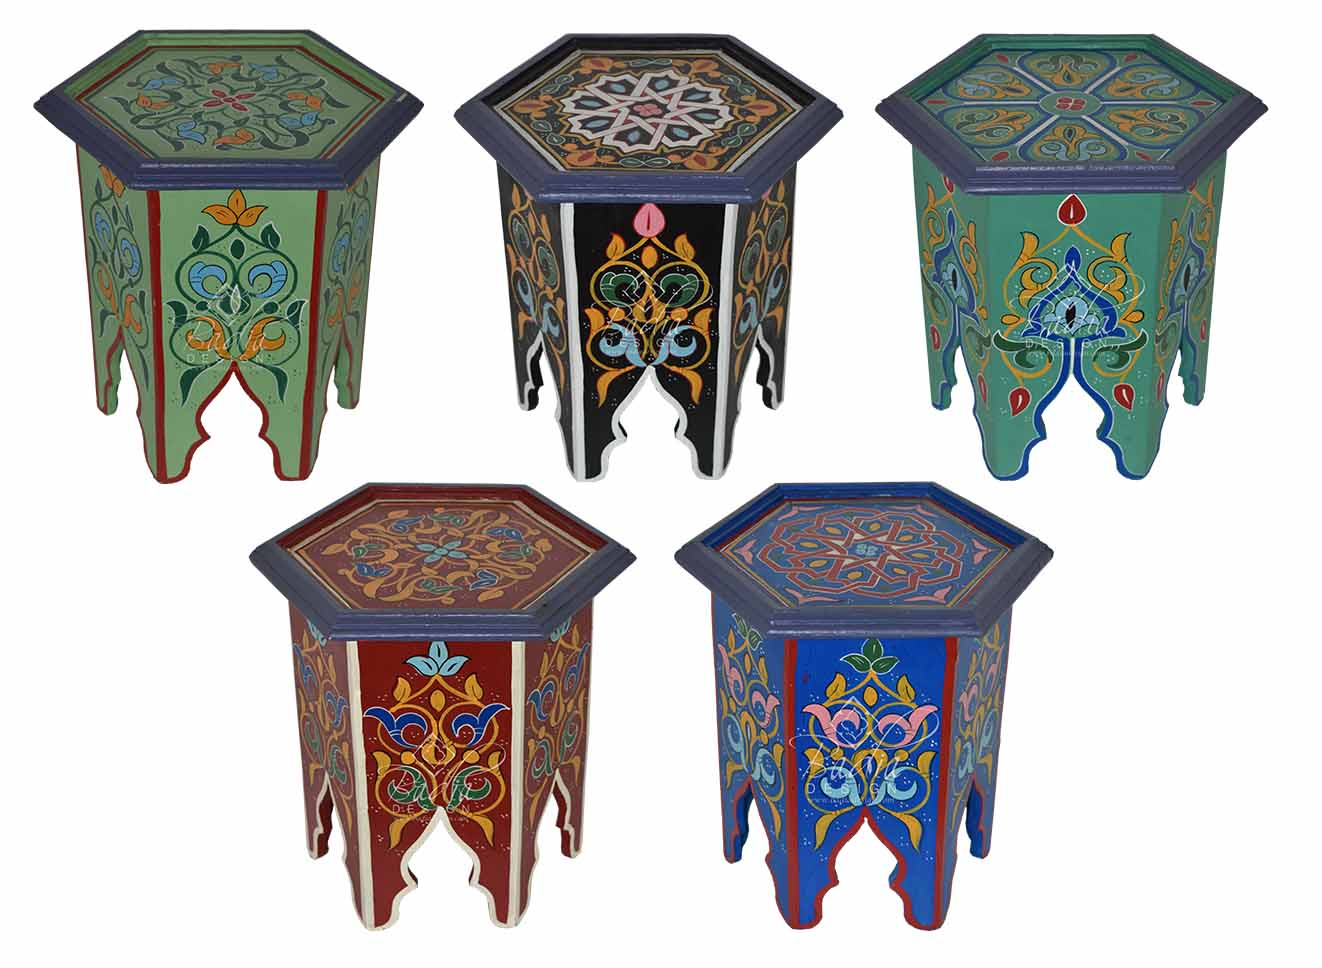 small-moroccan-hand-painted-side-table-hp005.jpg